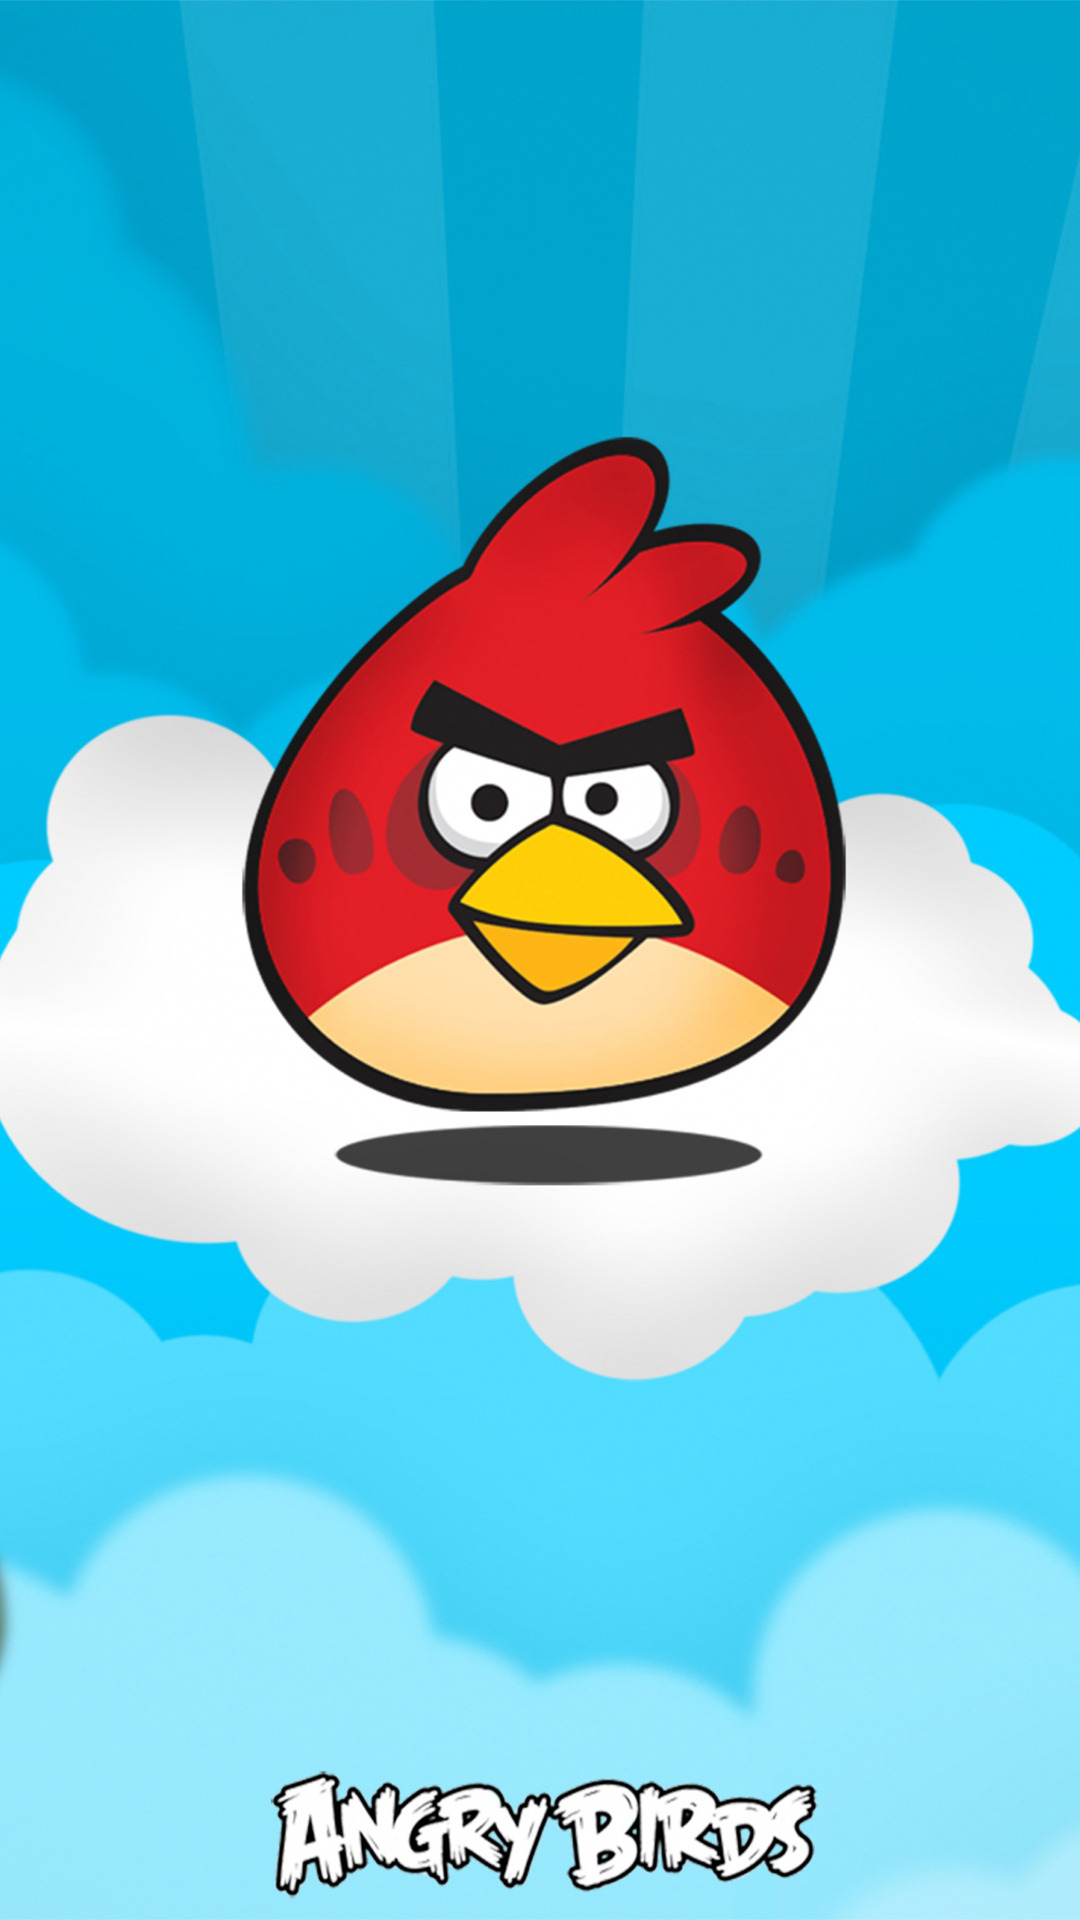 Wallpaper Hd For Desktop Full Screen Quotes Download Angry Birds Hd Wallpapers For Mobile Gallery